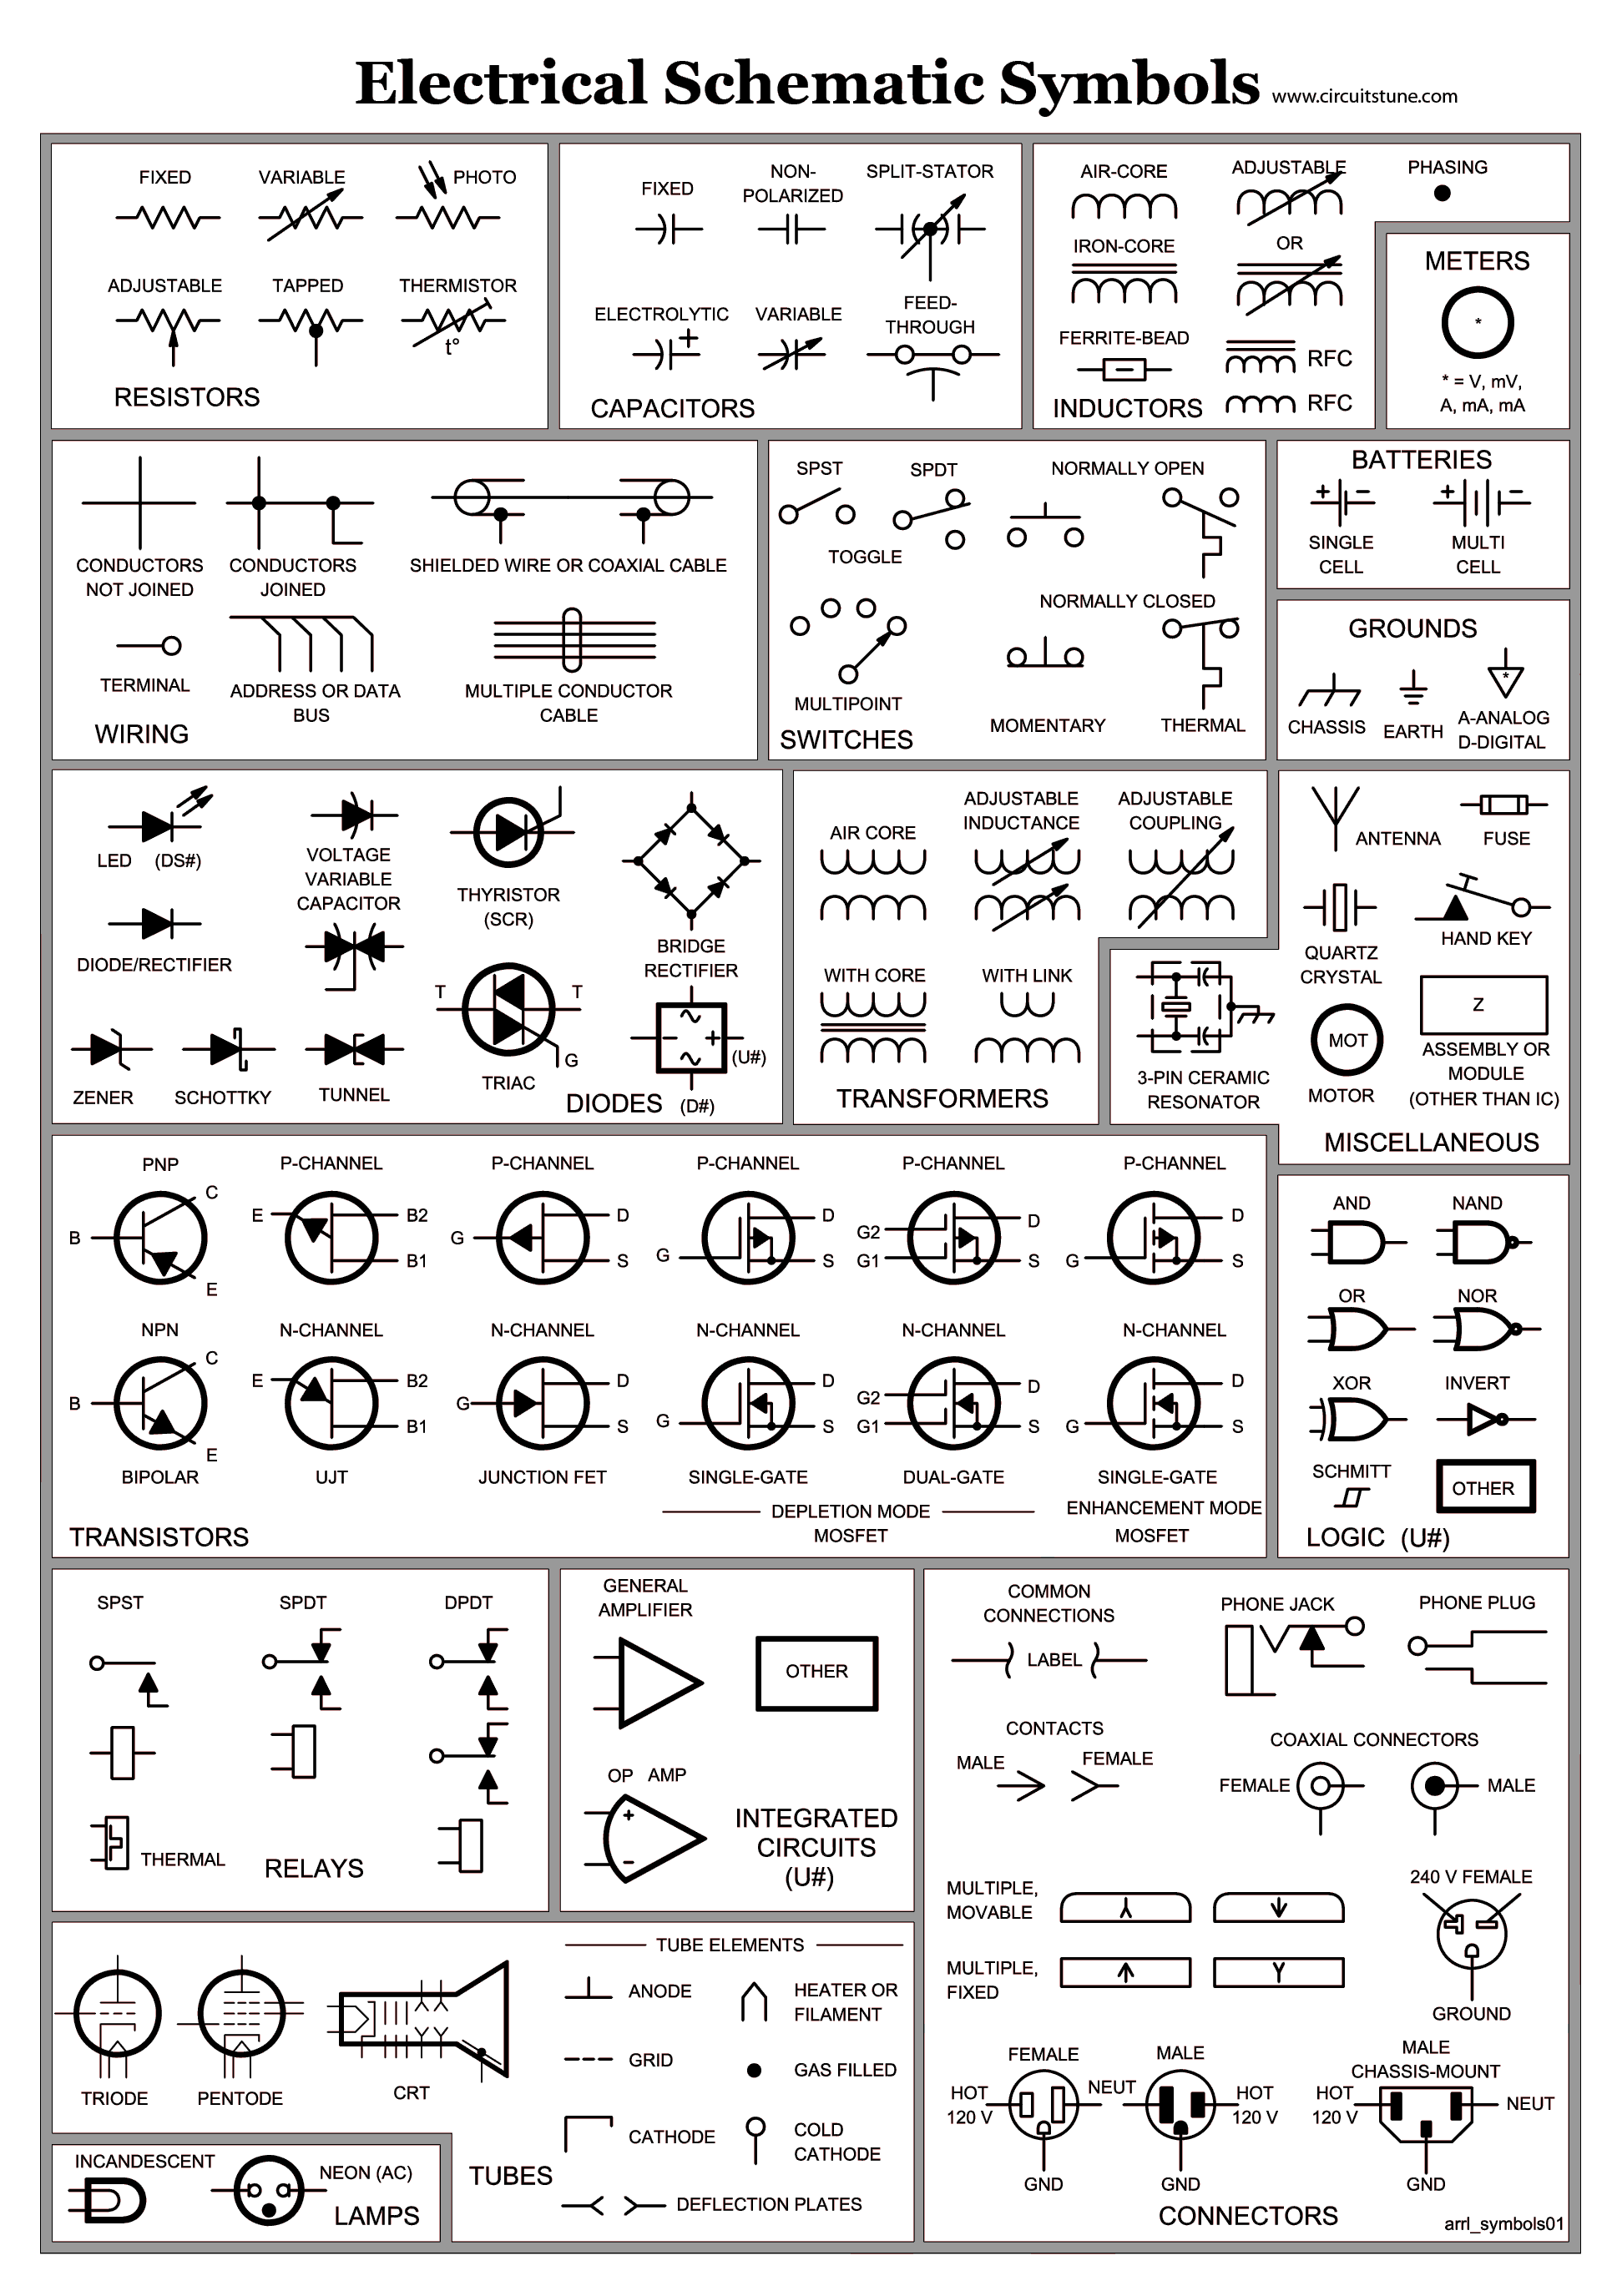 electrical schematic symbols wire diagram symbols automotive wiring rh pinterest com wiring diagram symbols and meanings wiring diagram symbols automotive